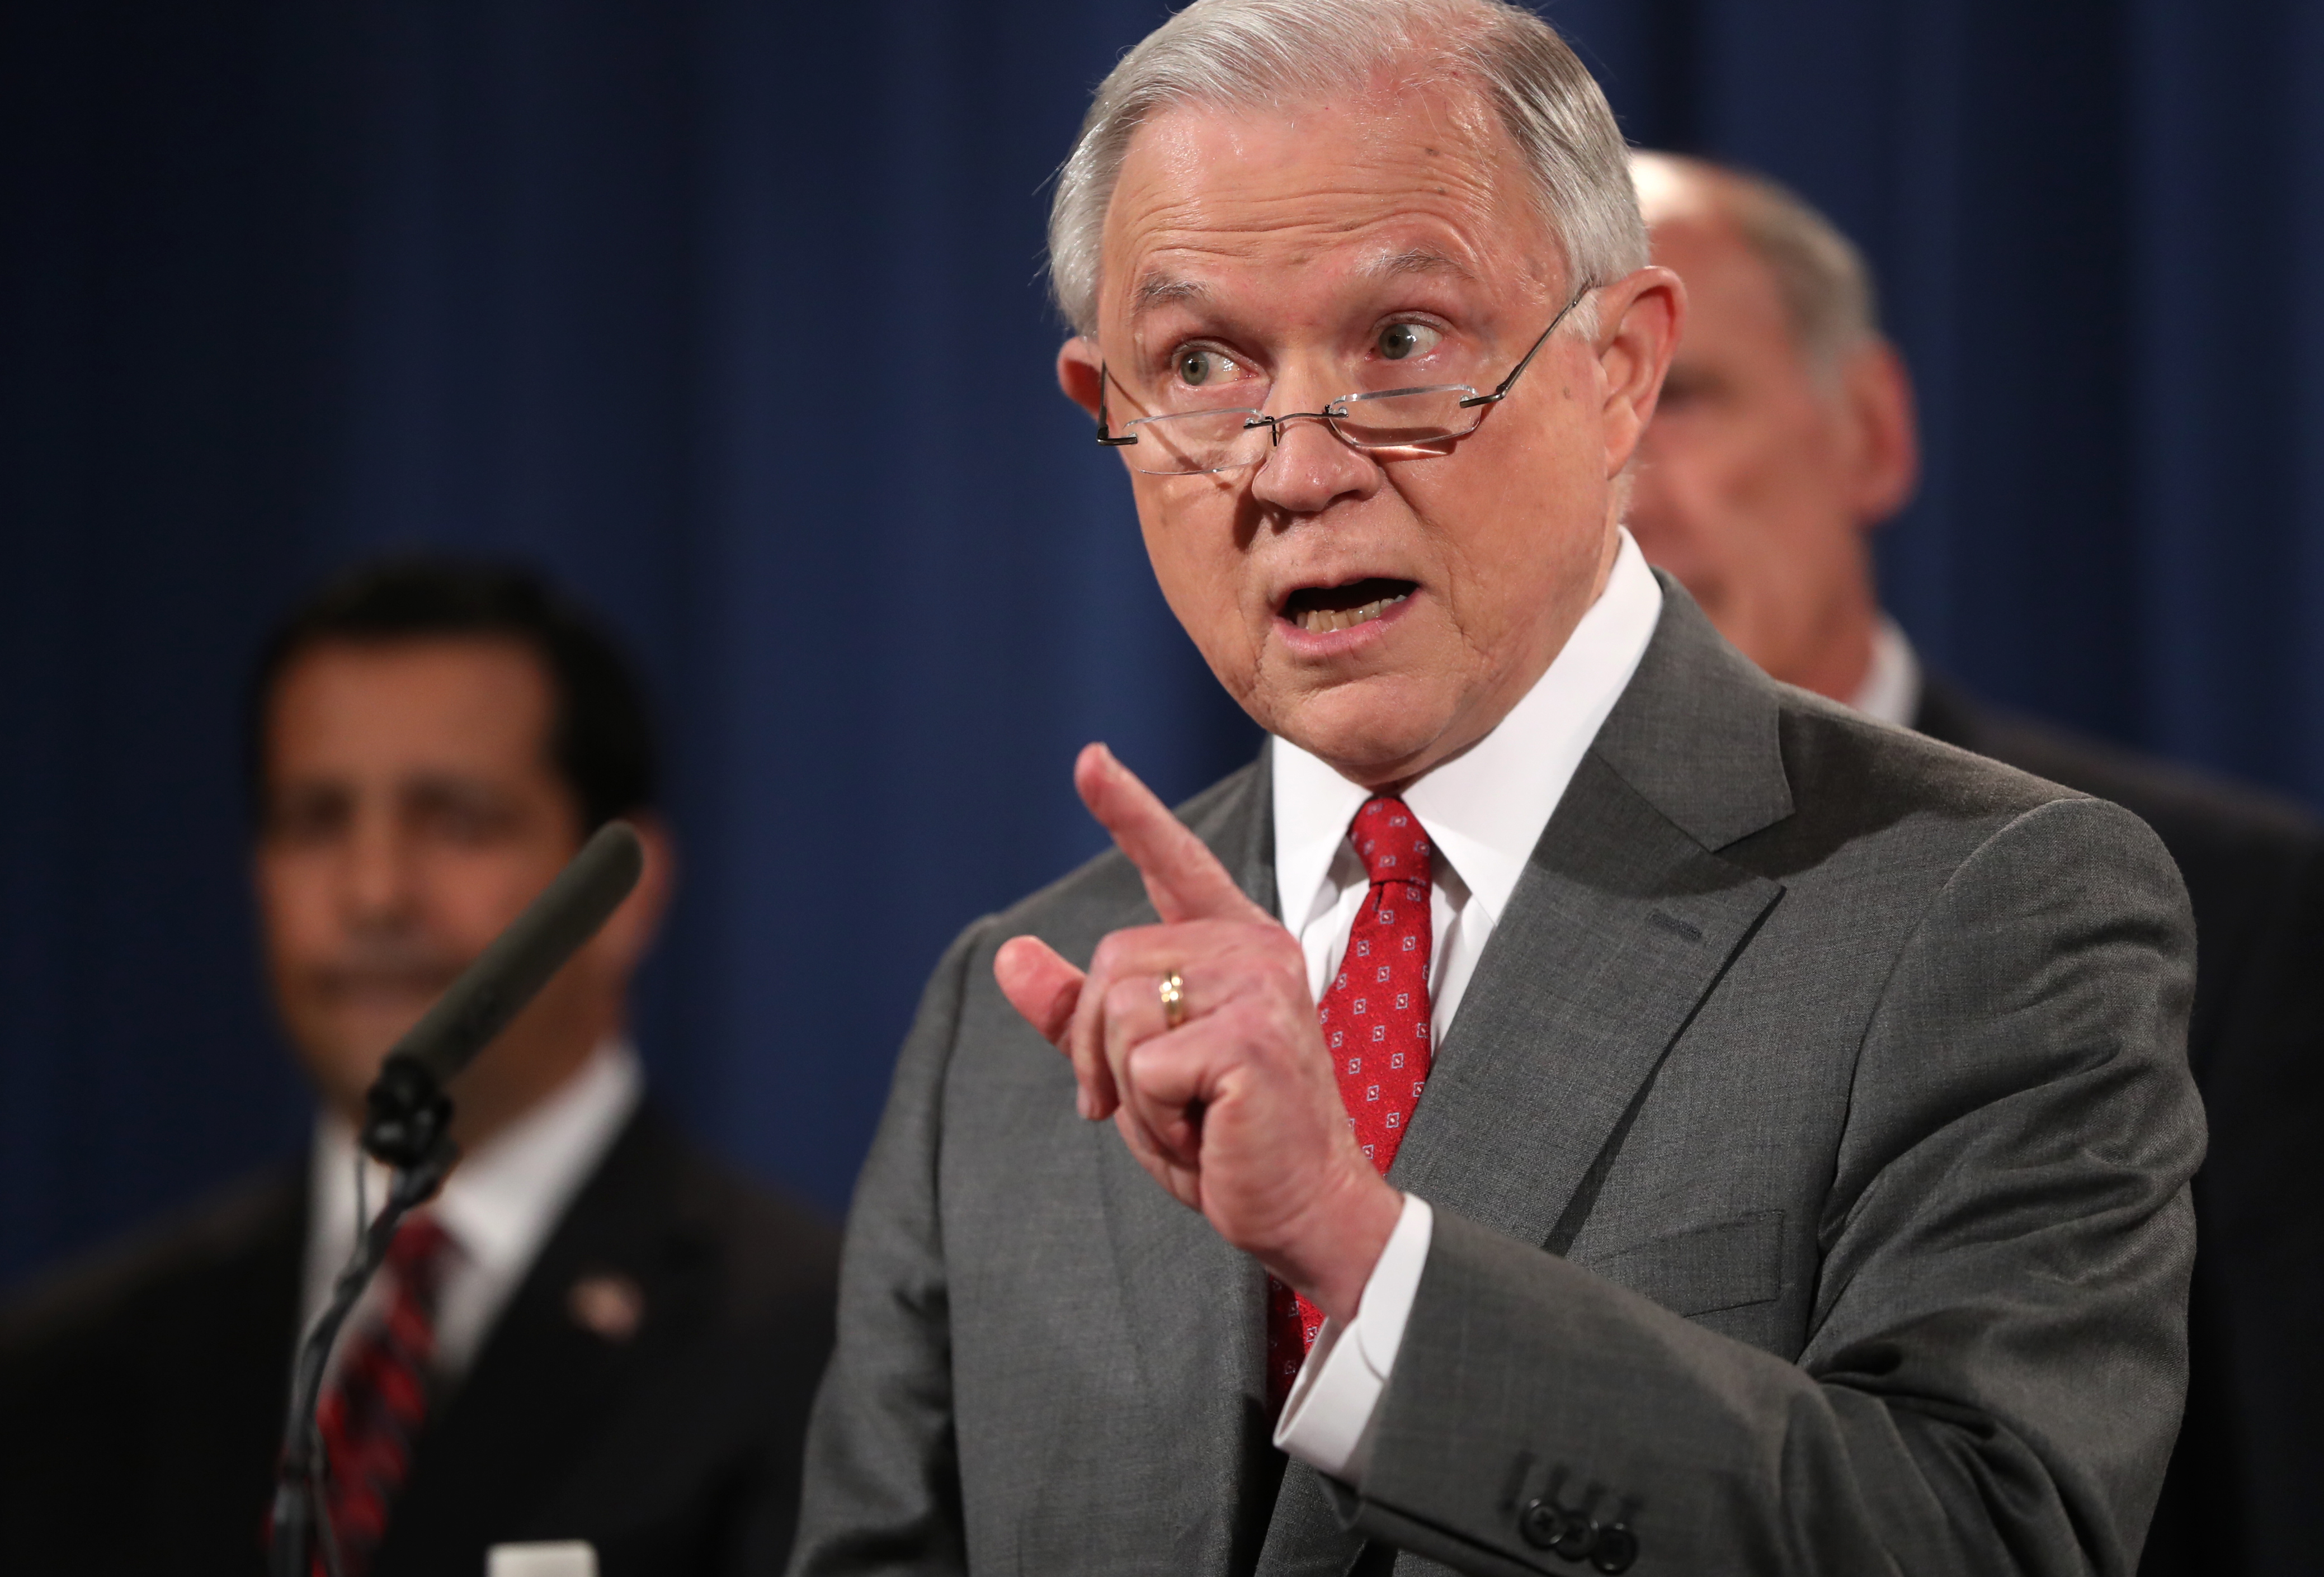 Attorney General Jeff Sessions speaks during a news conference at the Justice Department in Washington on Aug., 4, 2017. (Andrew Harnik/Associated Press)